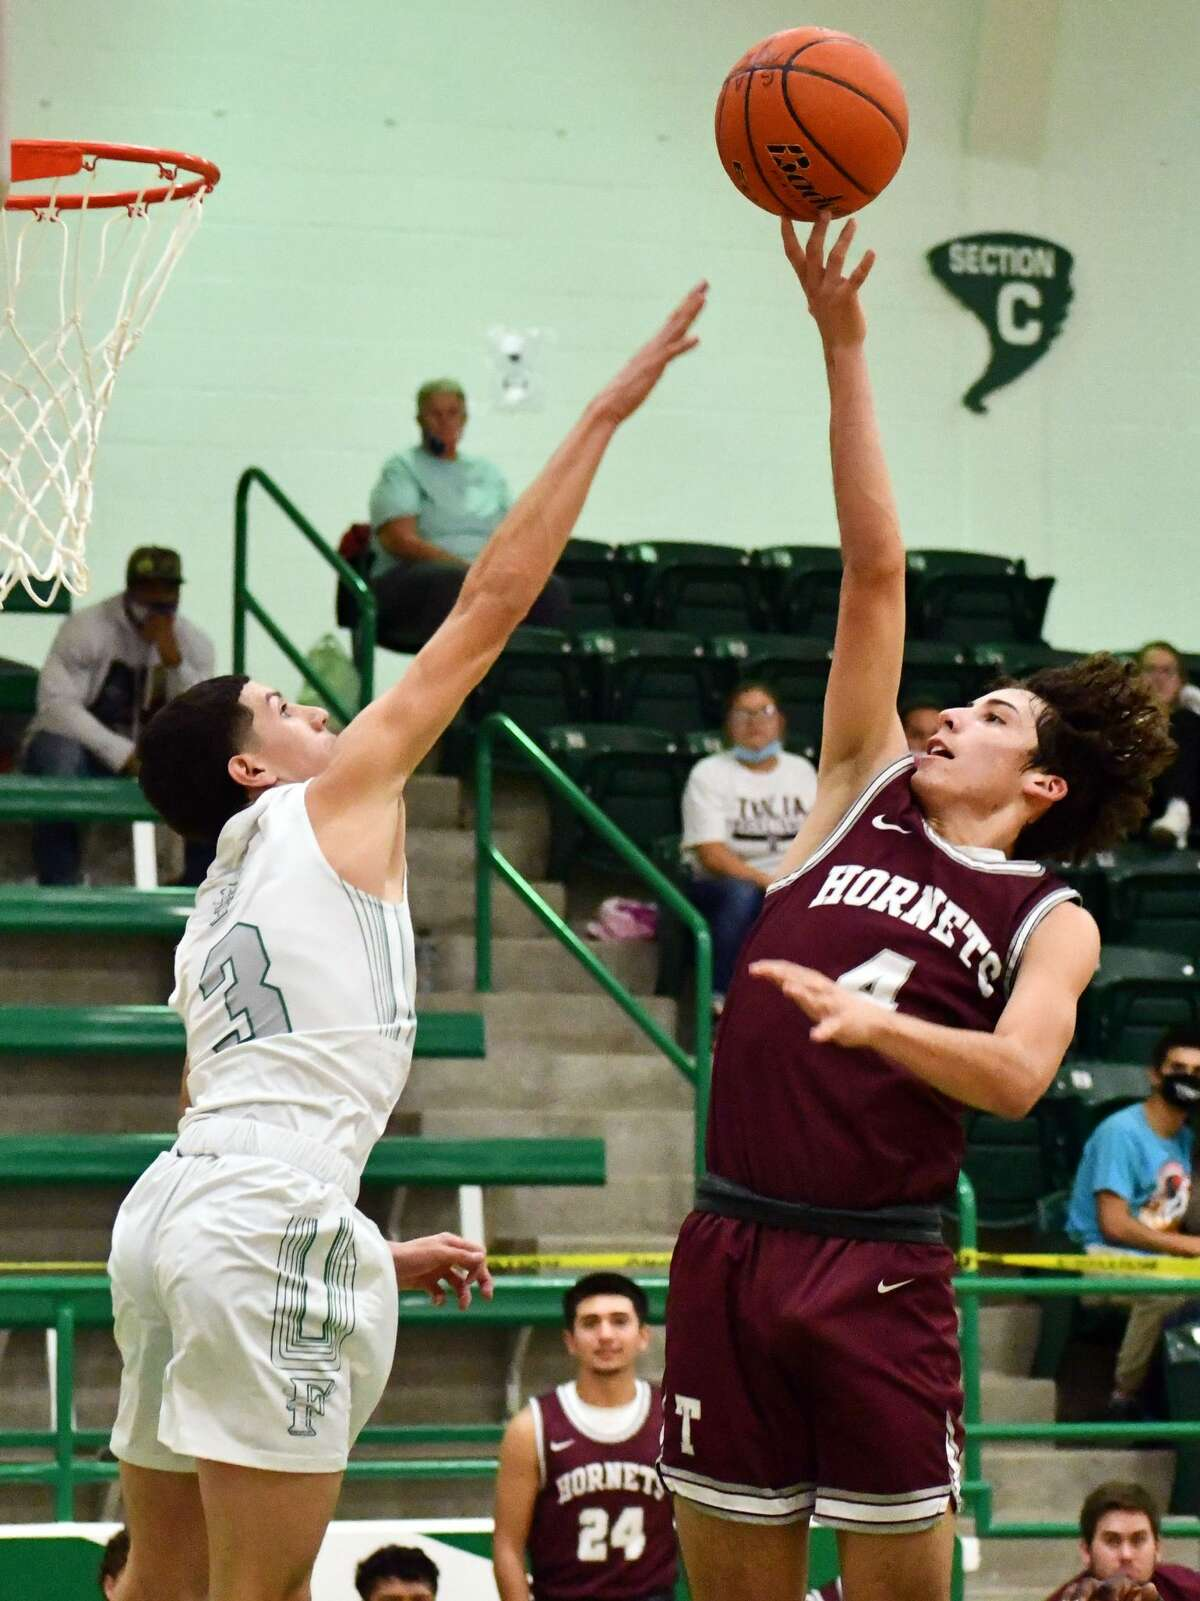 Tulia snagged a non-district road wins against Floydada on Dec. 11, 2020. The Lady Hornets defeated the Lady Winds 47-23 and the Tulia boys held off Floydada 69-64.